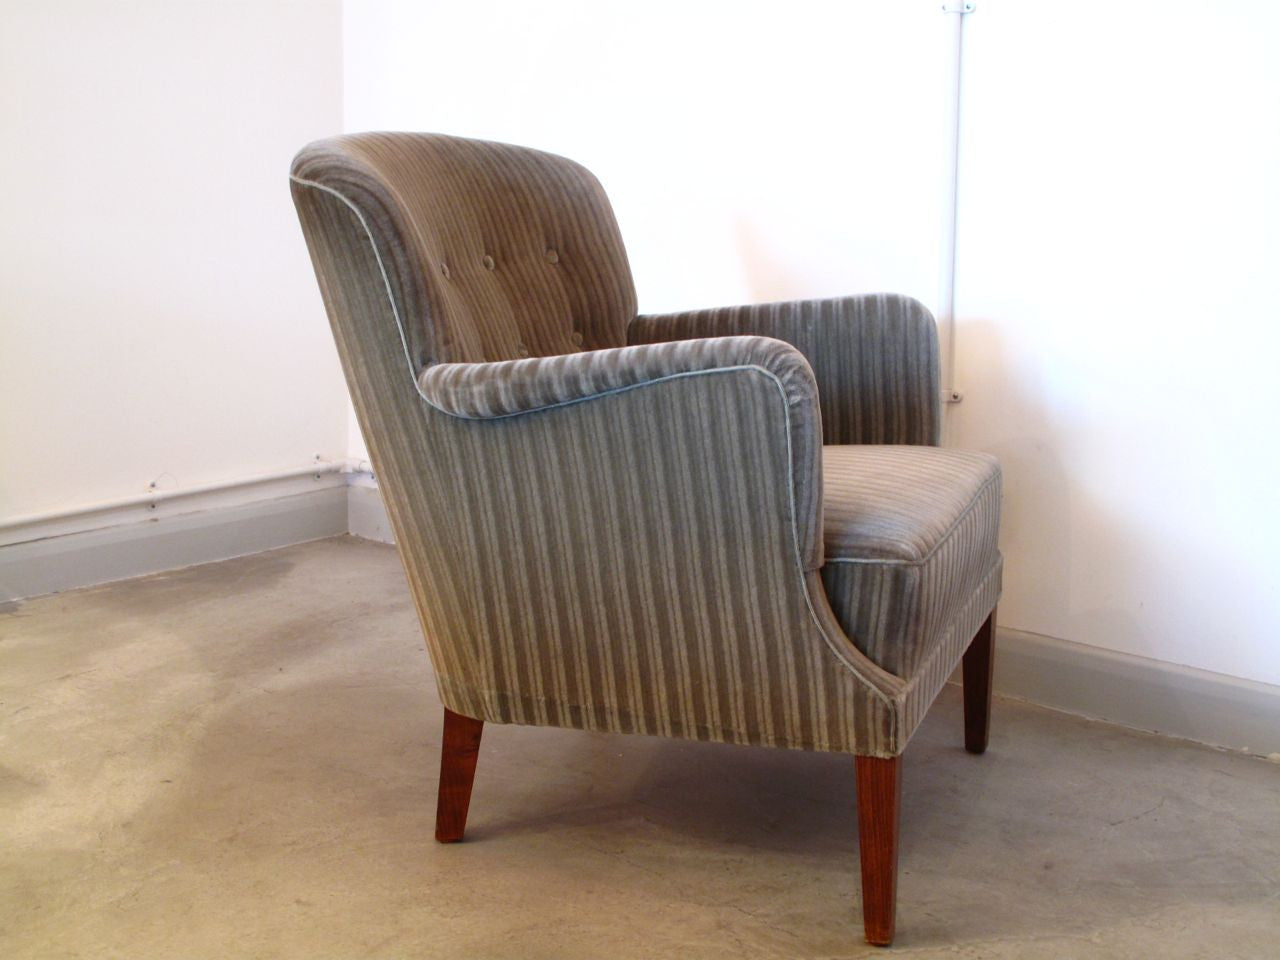 1940s/1950s occasional chair